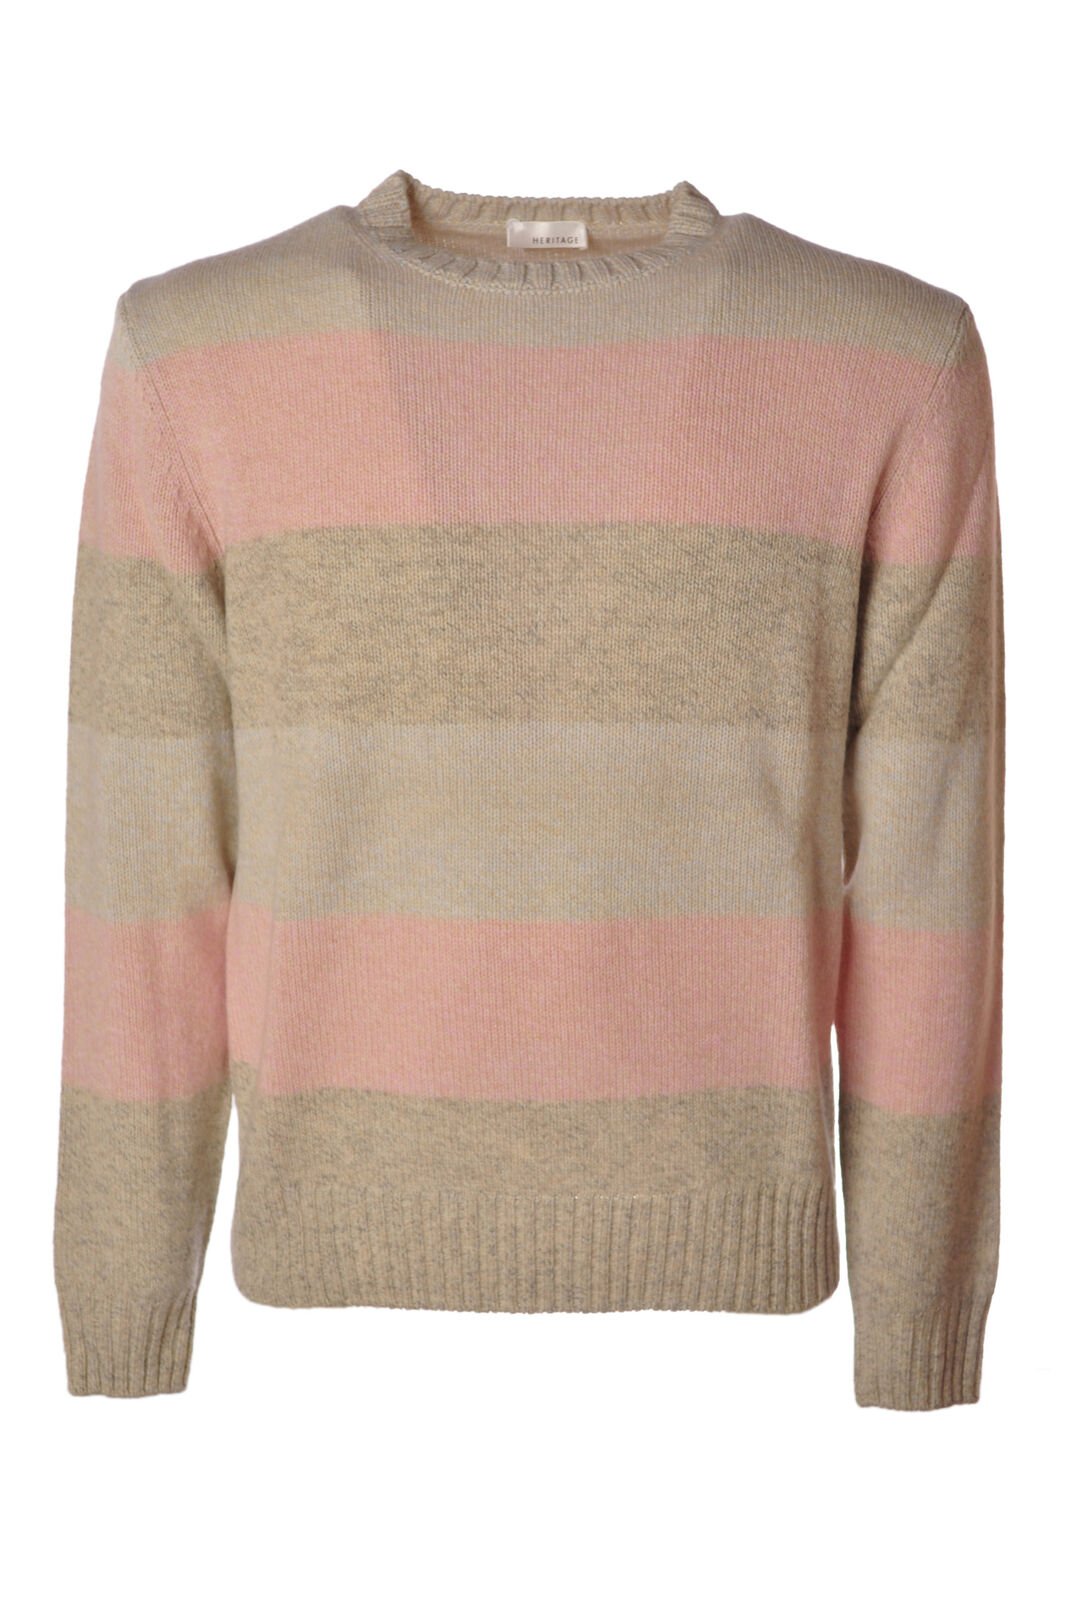 Heritage  -  Sweaters - Male - Fantasy - 4632222A181422